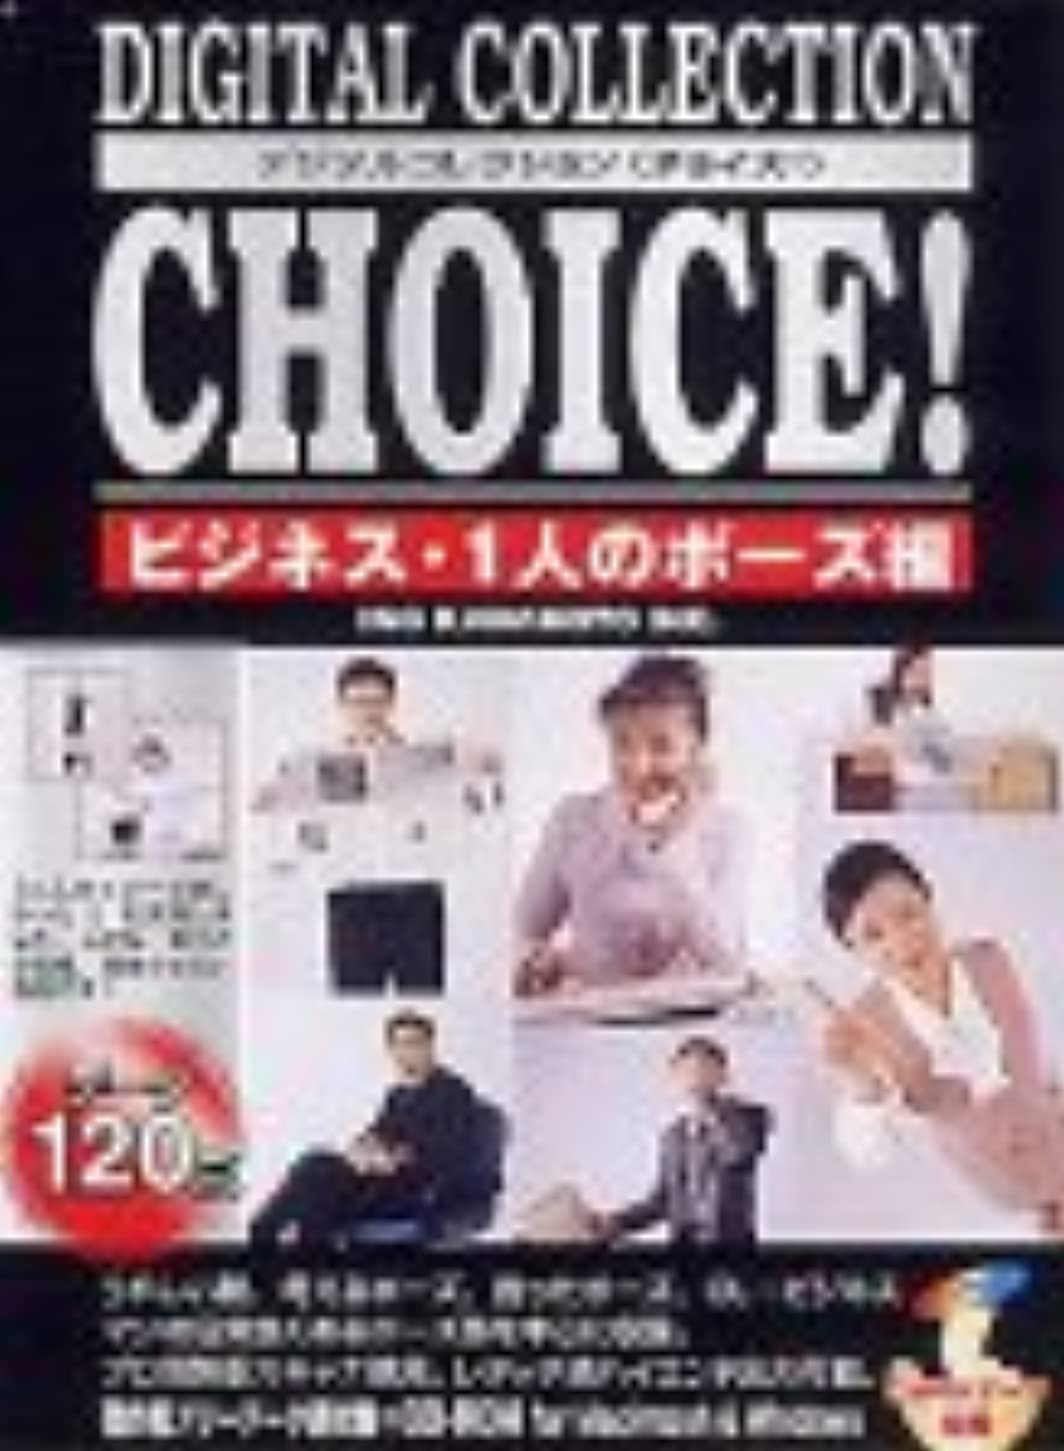 Digital Collection Choice! No.20 ビジネス?1人のポーズ編